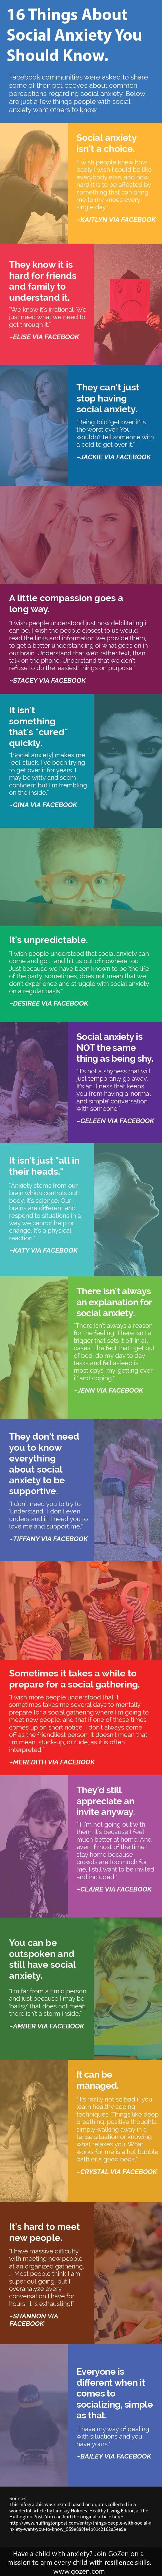 social anxiety tips for teens